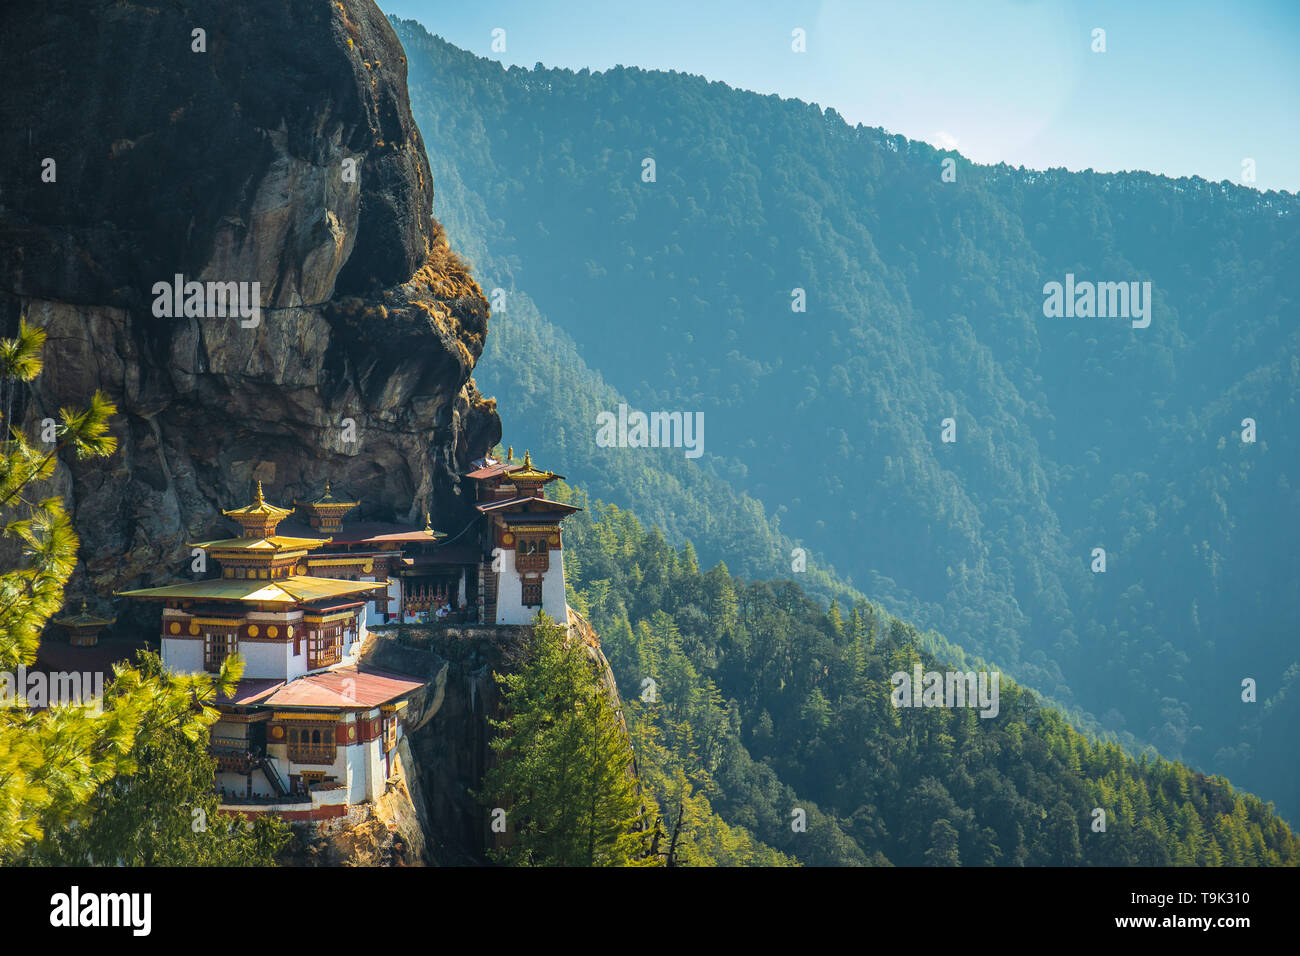 The most sacred place in Bhutan is located on the high cliff mountain with sky of Paro valley, Bhutan - Stock Image